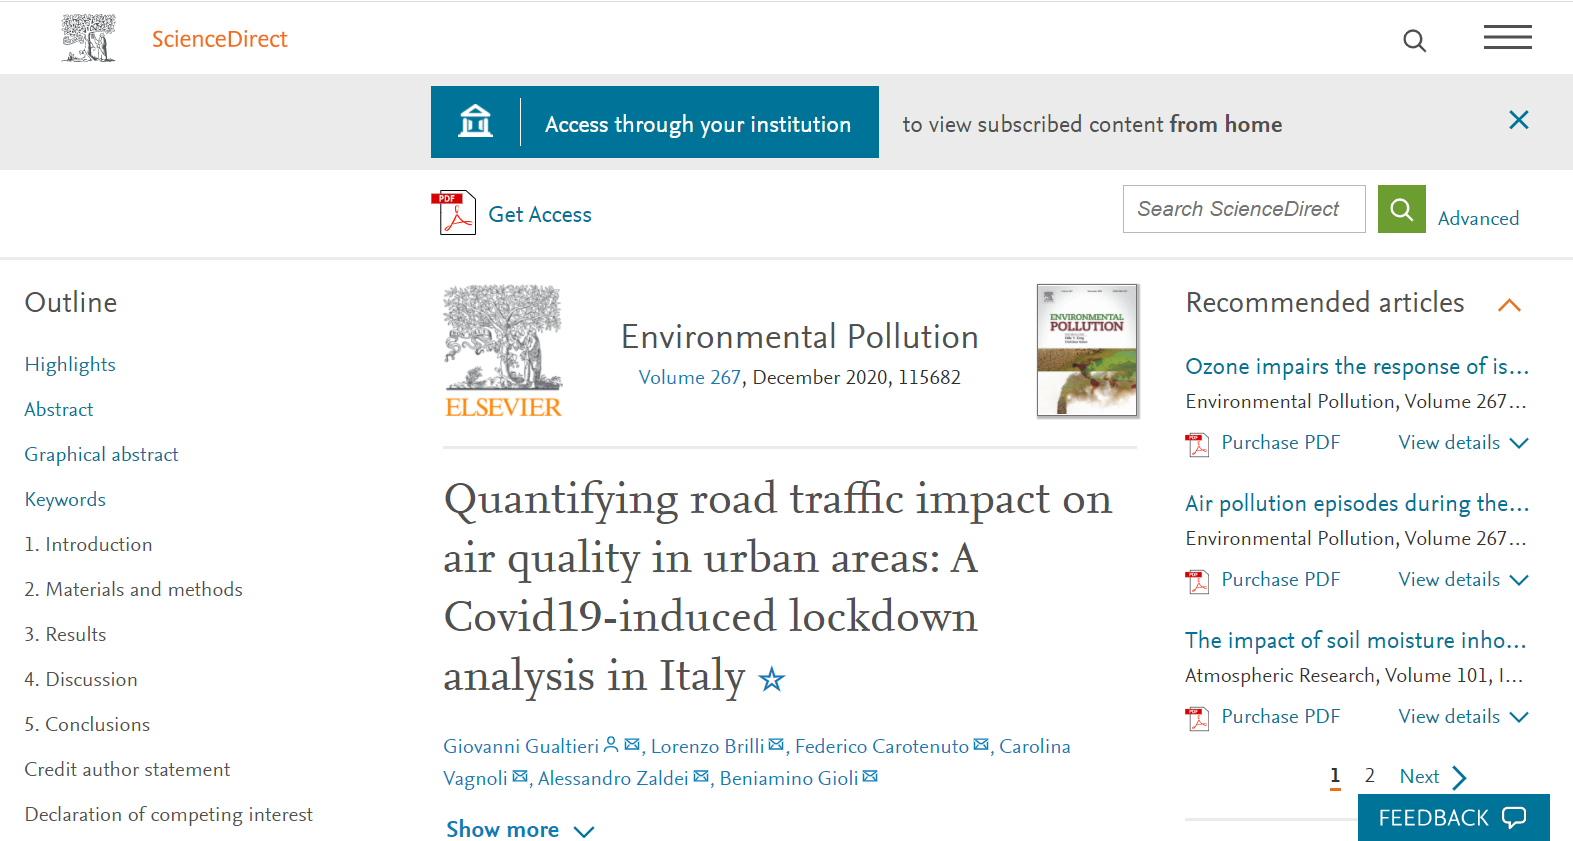 Quantifying Road Traffic Impact on Air Quality in Urban Areas: a Covid19-induced lockdown analysis in Italy